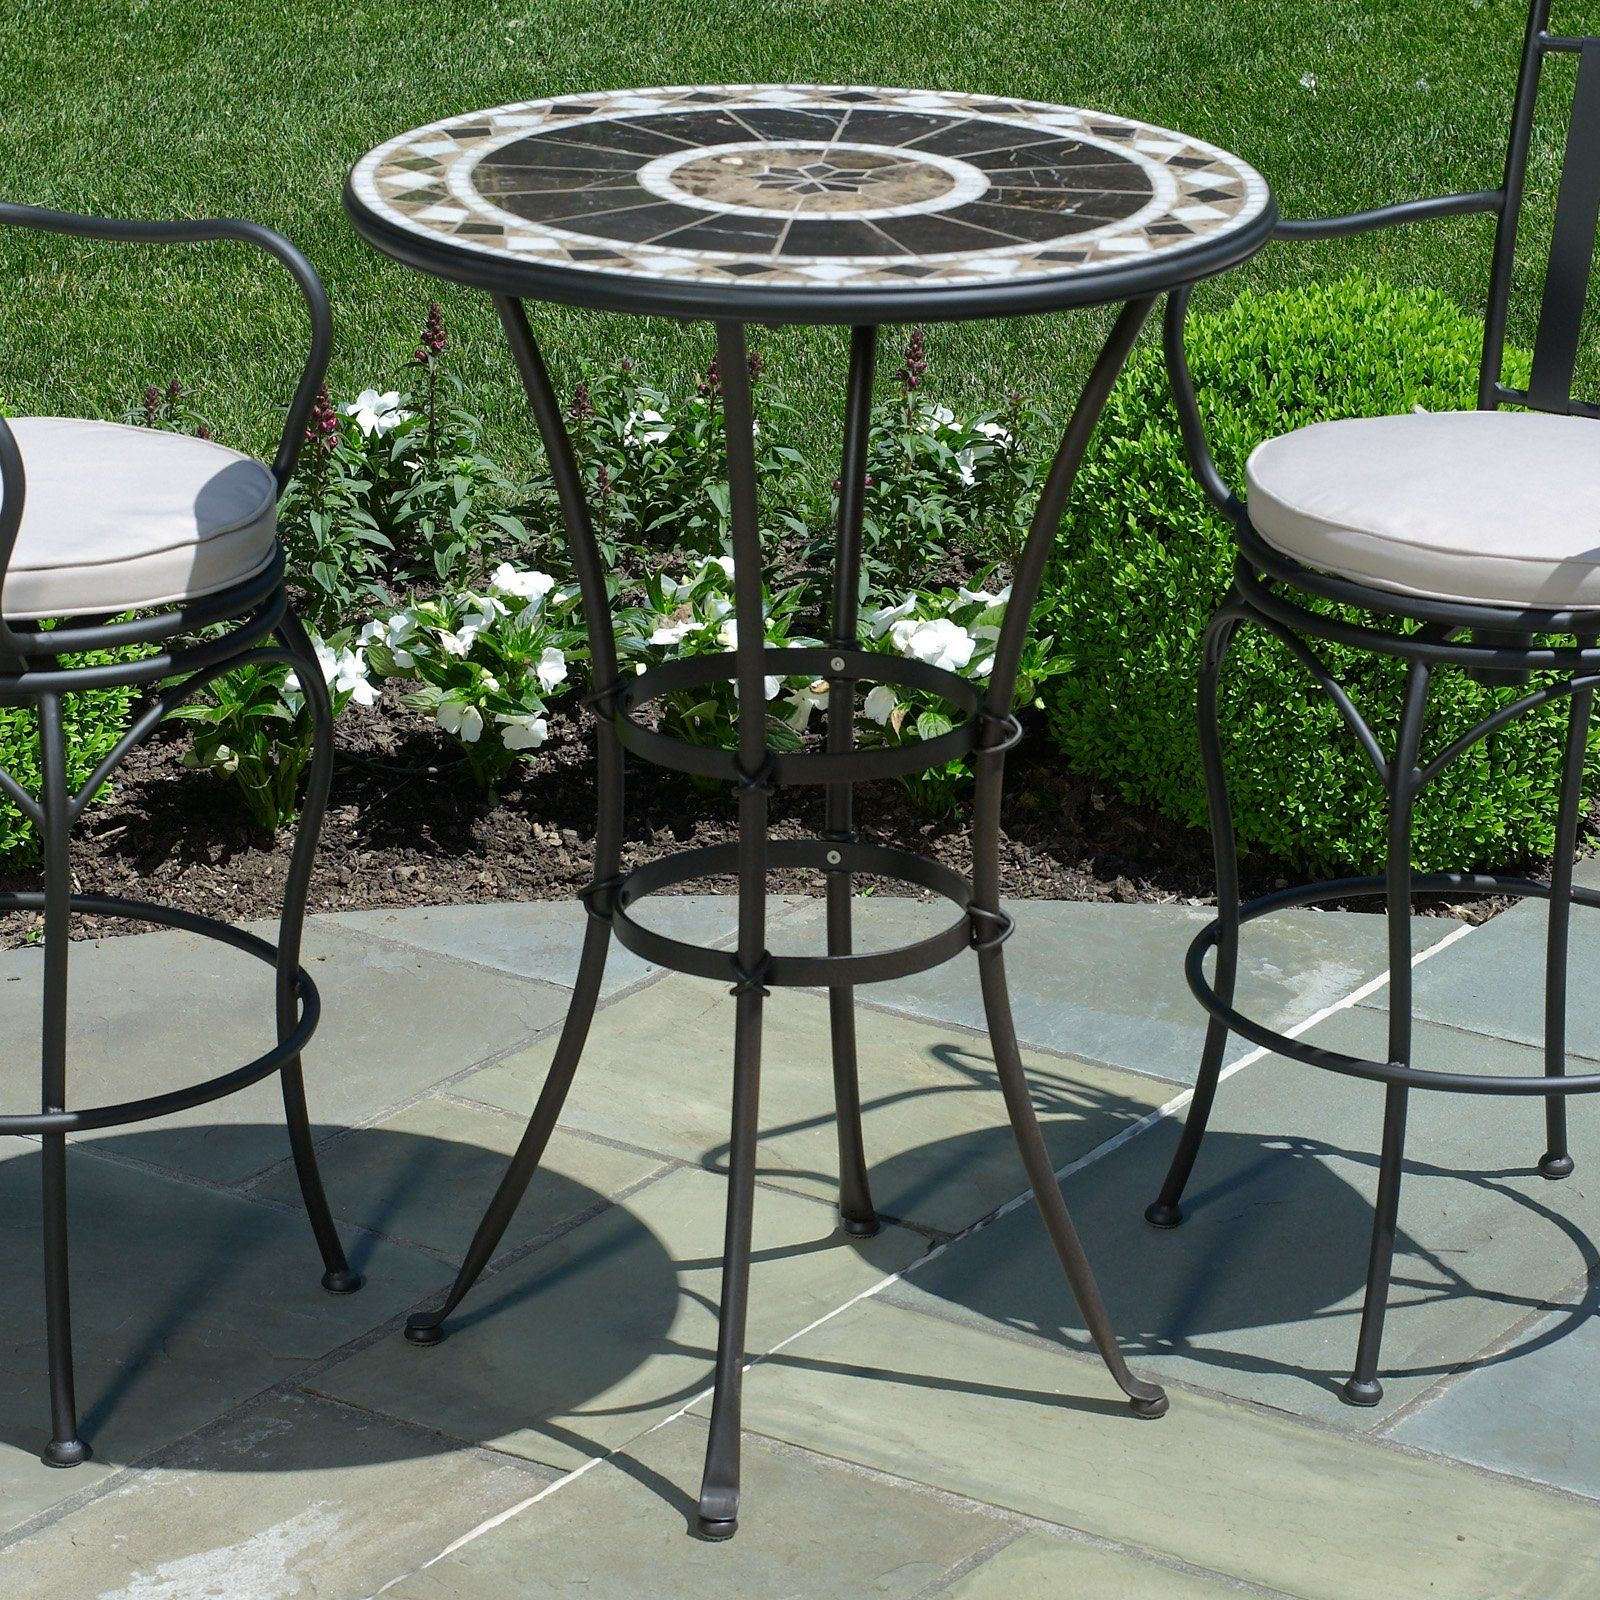 small outdoor patio table and chairs redman power chair reviews elegant peerless round stools bar height furniture wicker an essential element to space with plus